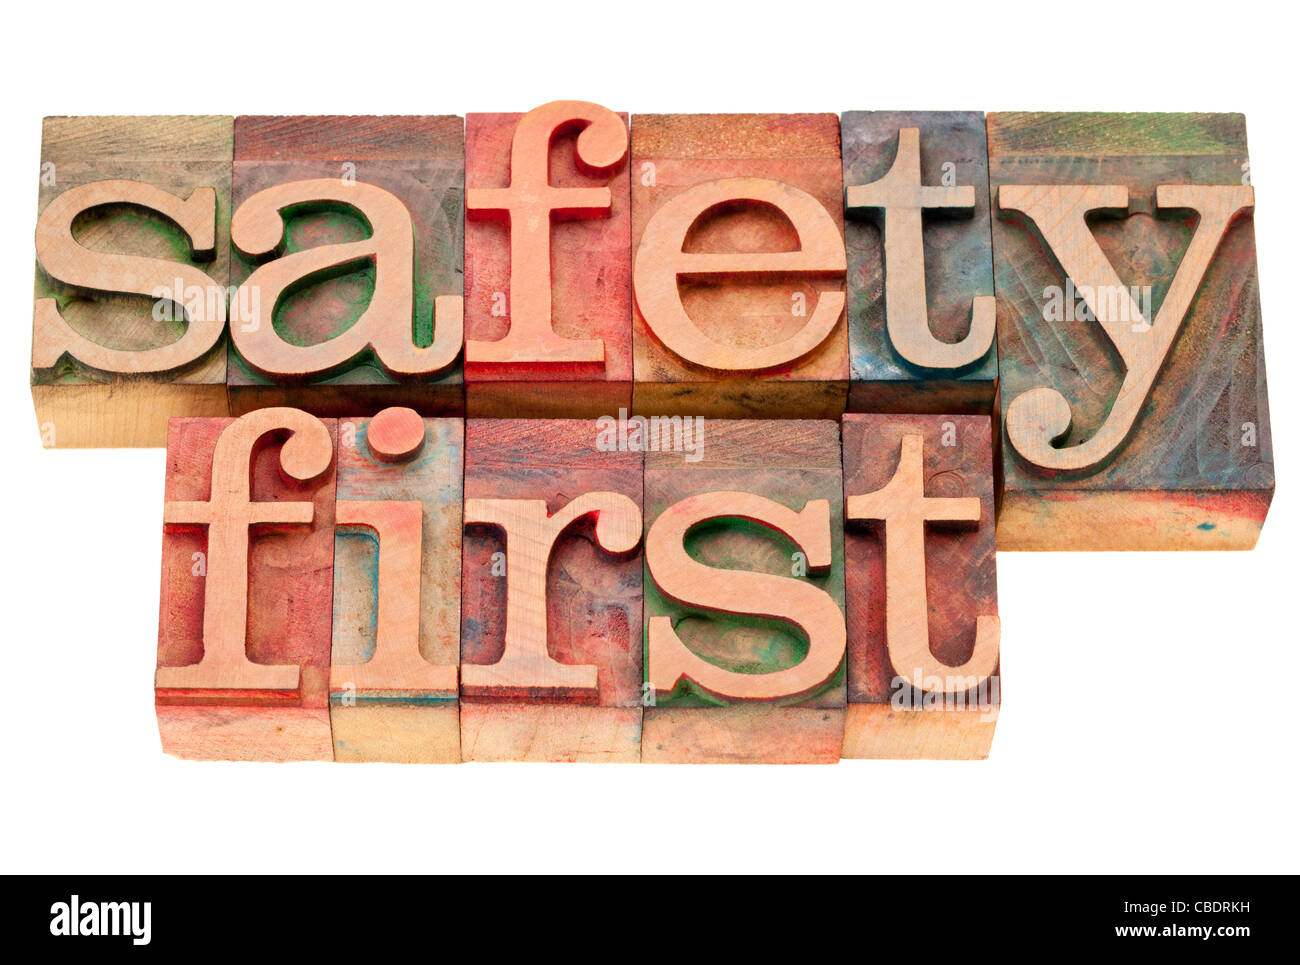 safety first - isolated phrase in vintage wood letterpress printing blocks - Stock Image